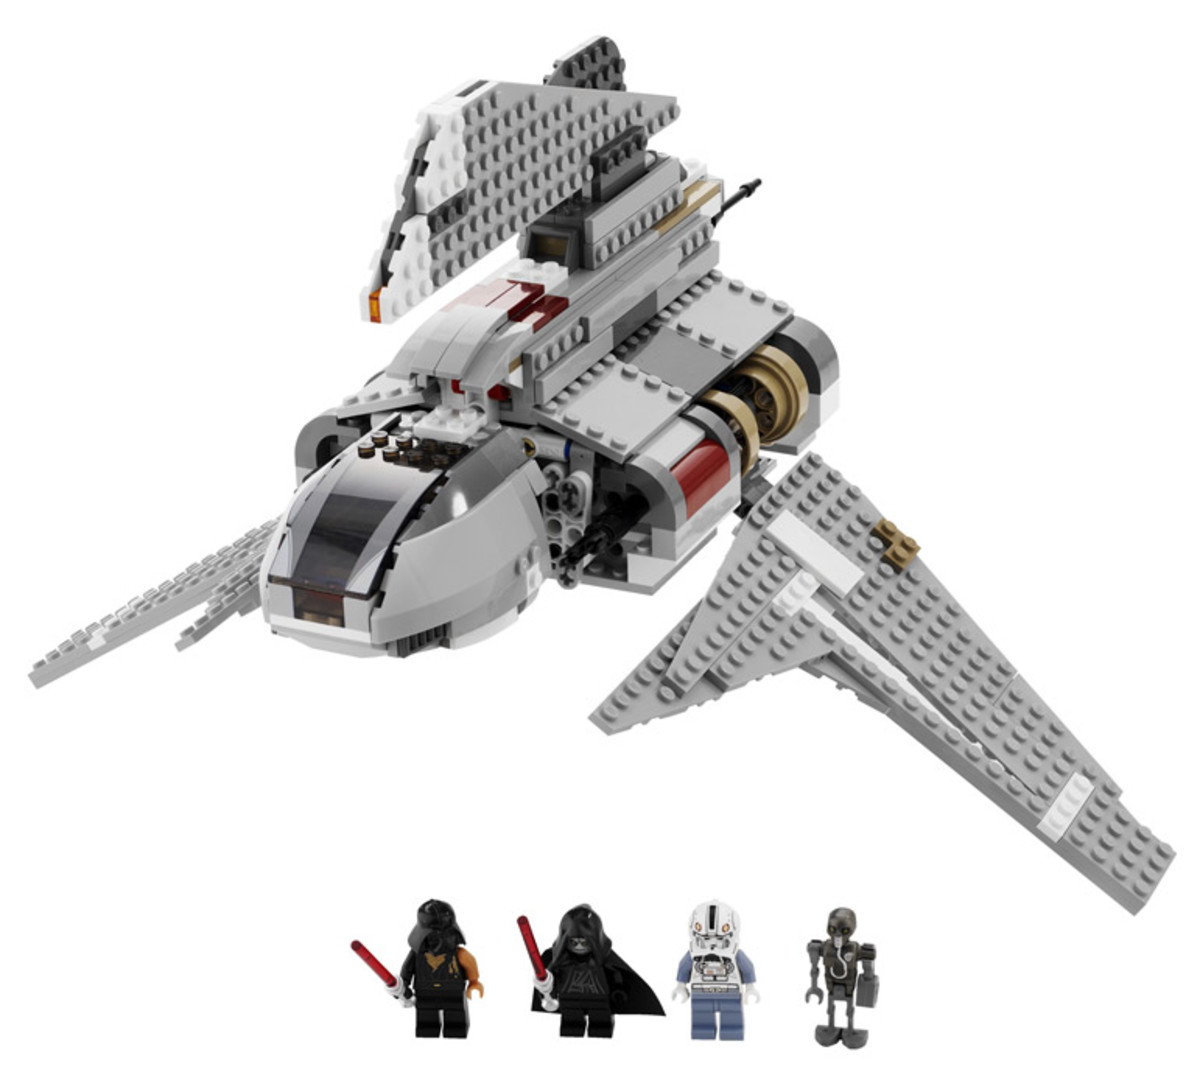 LEGO Star Wars Emperor Palpatine's Shuttle 8096 Assembled